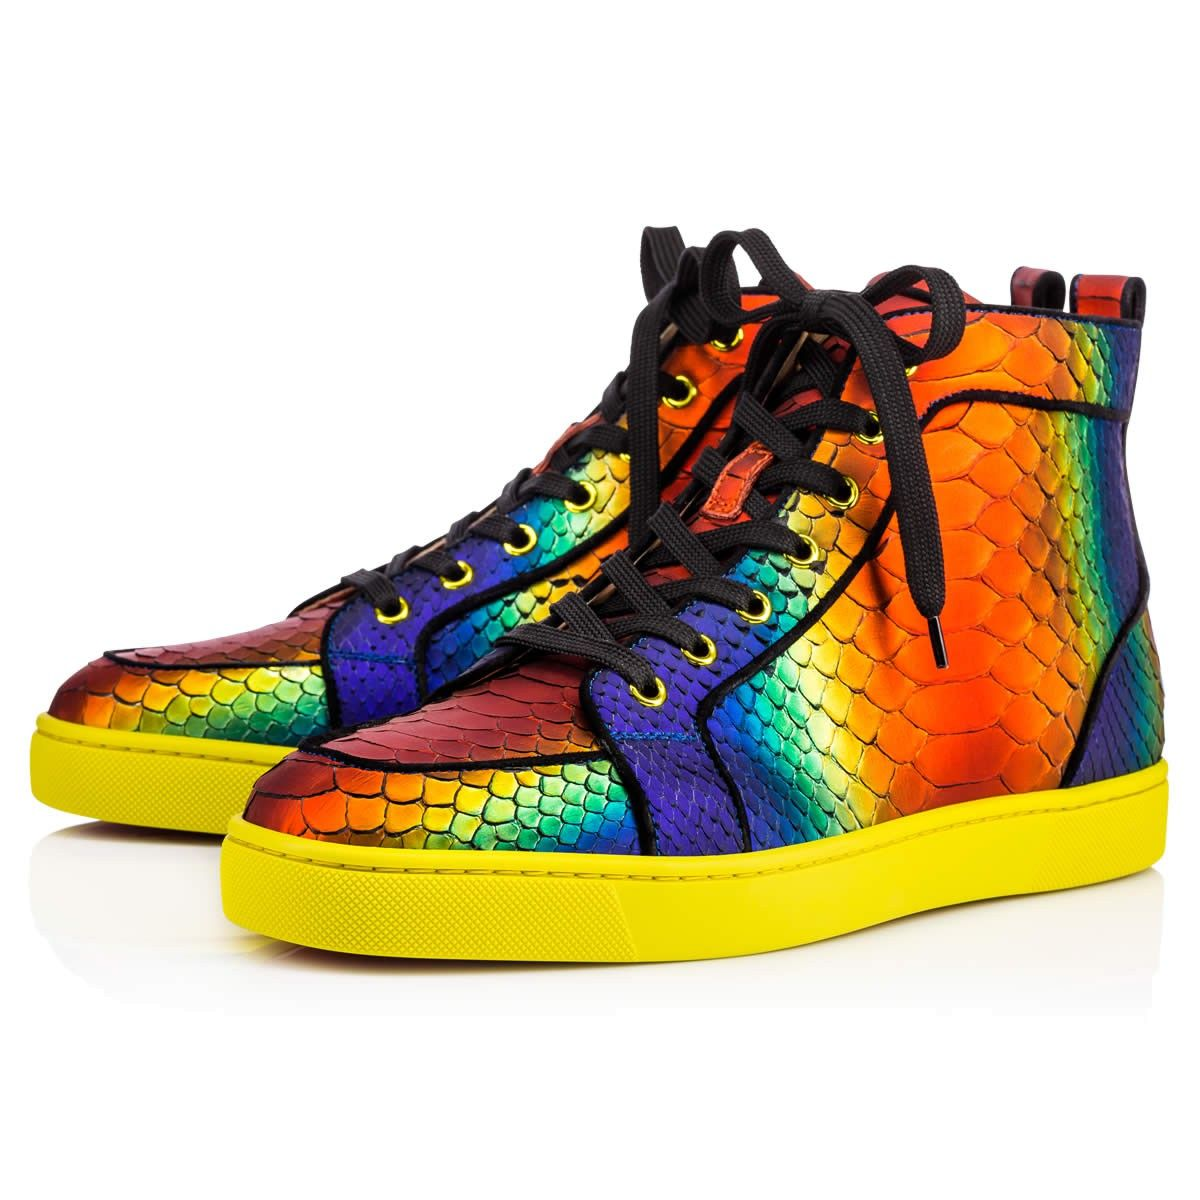 f7378b80548e Christian Louboutin Rantus Orlato Mens Flat sneakers in rainbow python  leather  1995. Rantus Orlato is the hightop sneaker of choice for many.